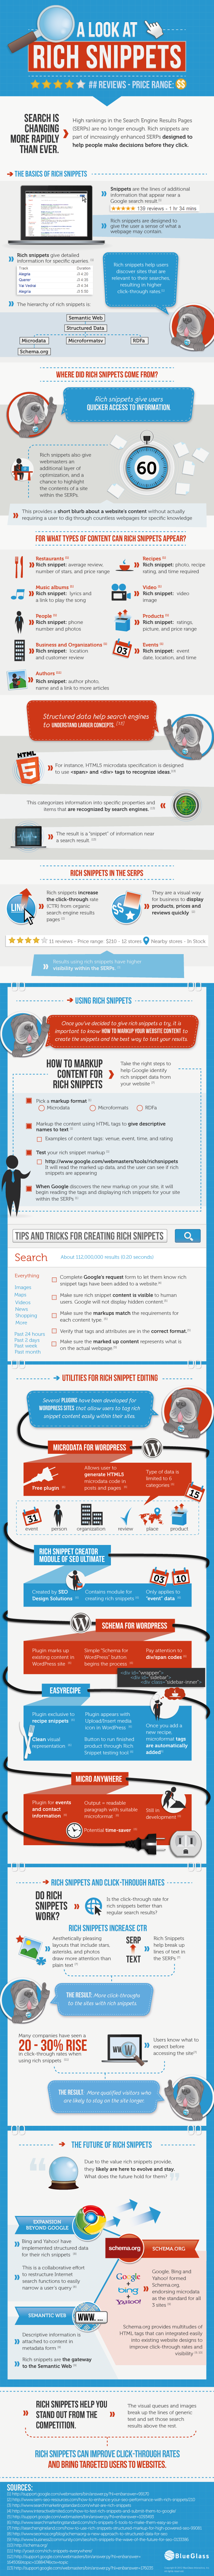 How To Use GOOGLE RICH SNIPPETS To Enhance Your Search Results : infographic